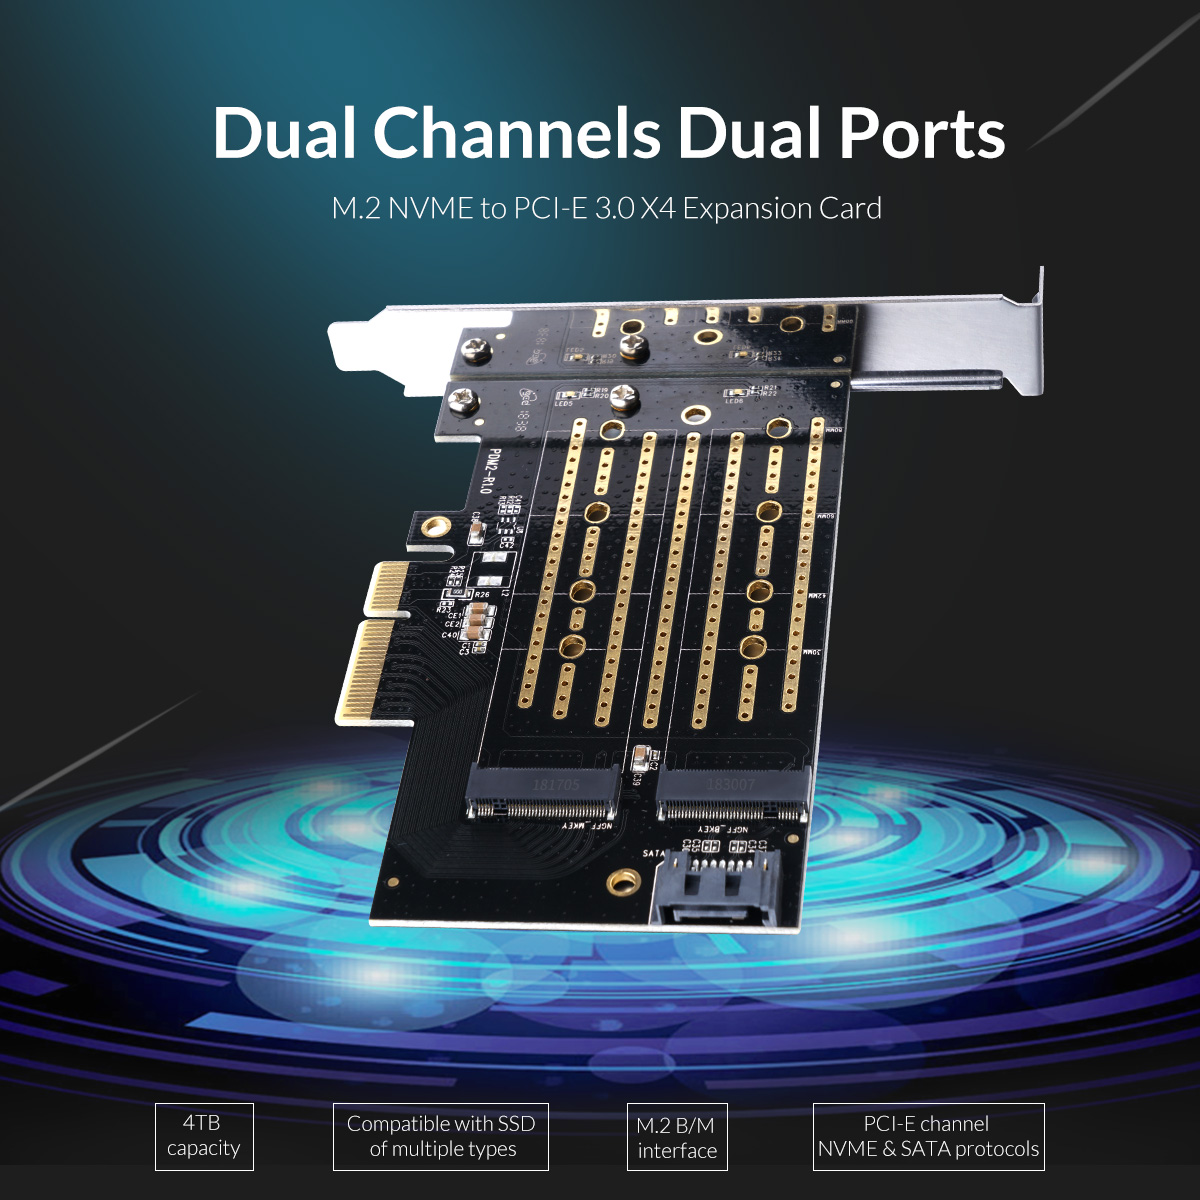 M.2 NVME to PCI-E 3.0 X4 Expansion card